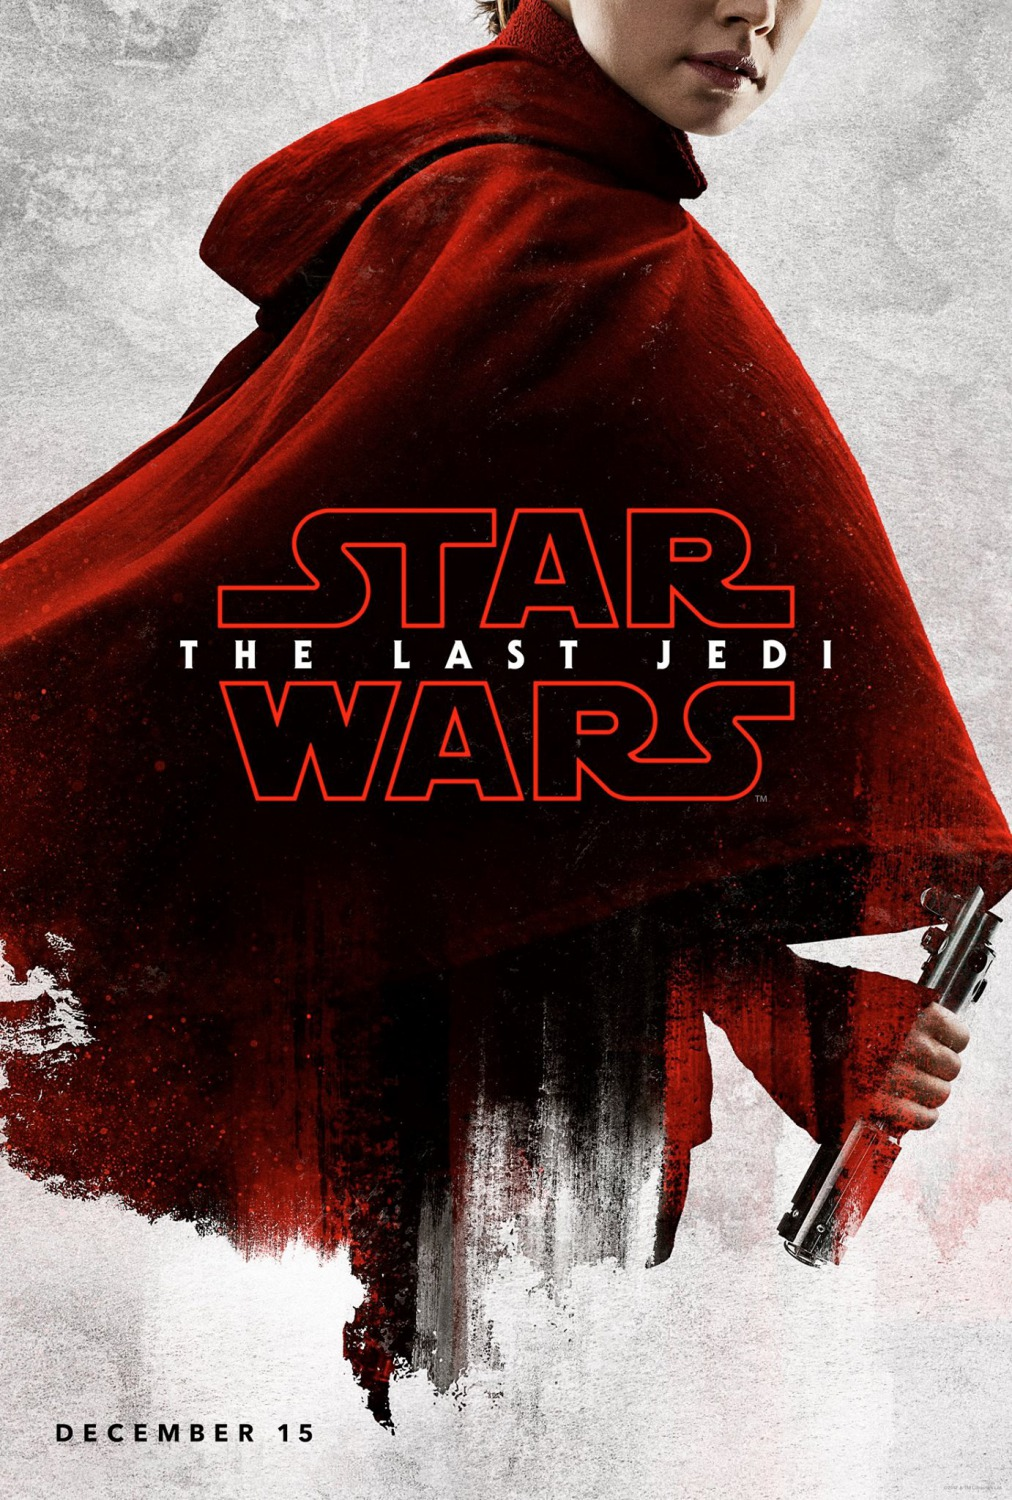 The D23 Expo Exclusive Star Wars: The Last Jedi Teaser Character Movie  Poster Set includes Mark Hamill as Luke Skywalker, Daisy Ridley as Rey, ...